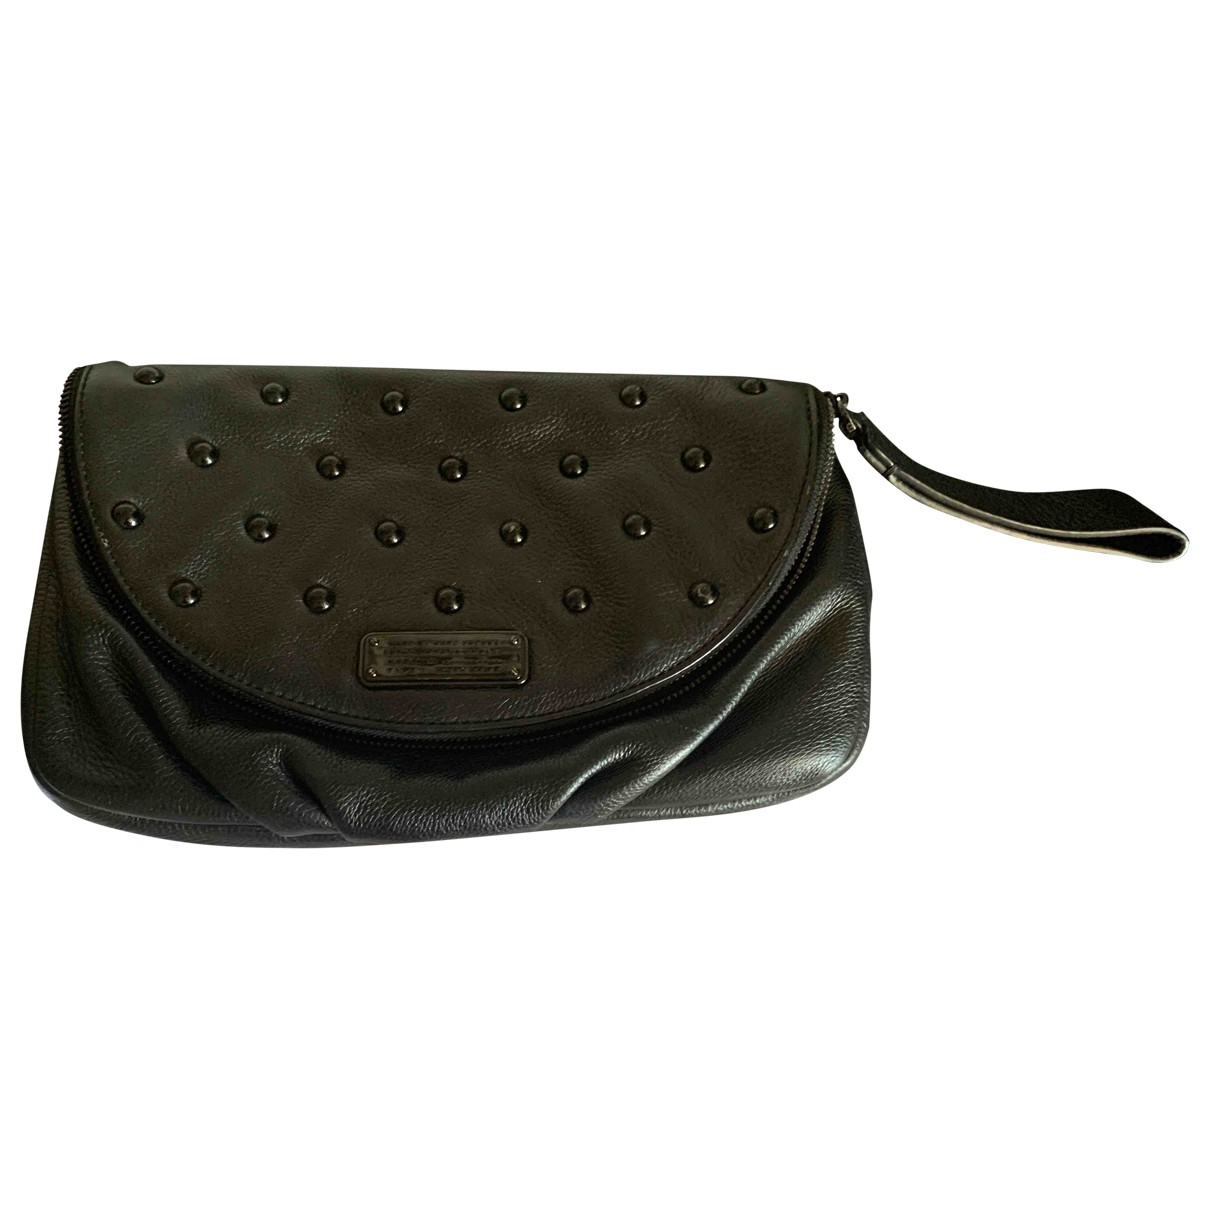 Marc By Marc Jacobs \N Black Leather Clutch bag for Women \N